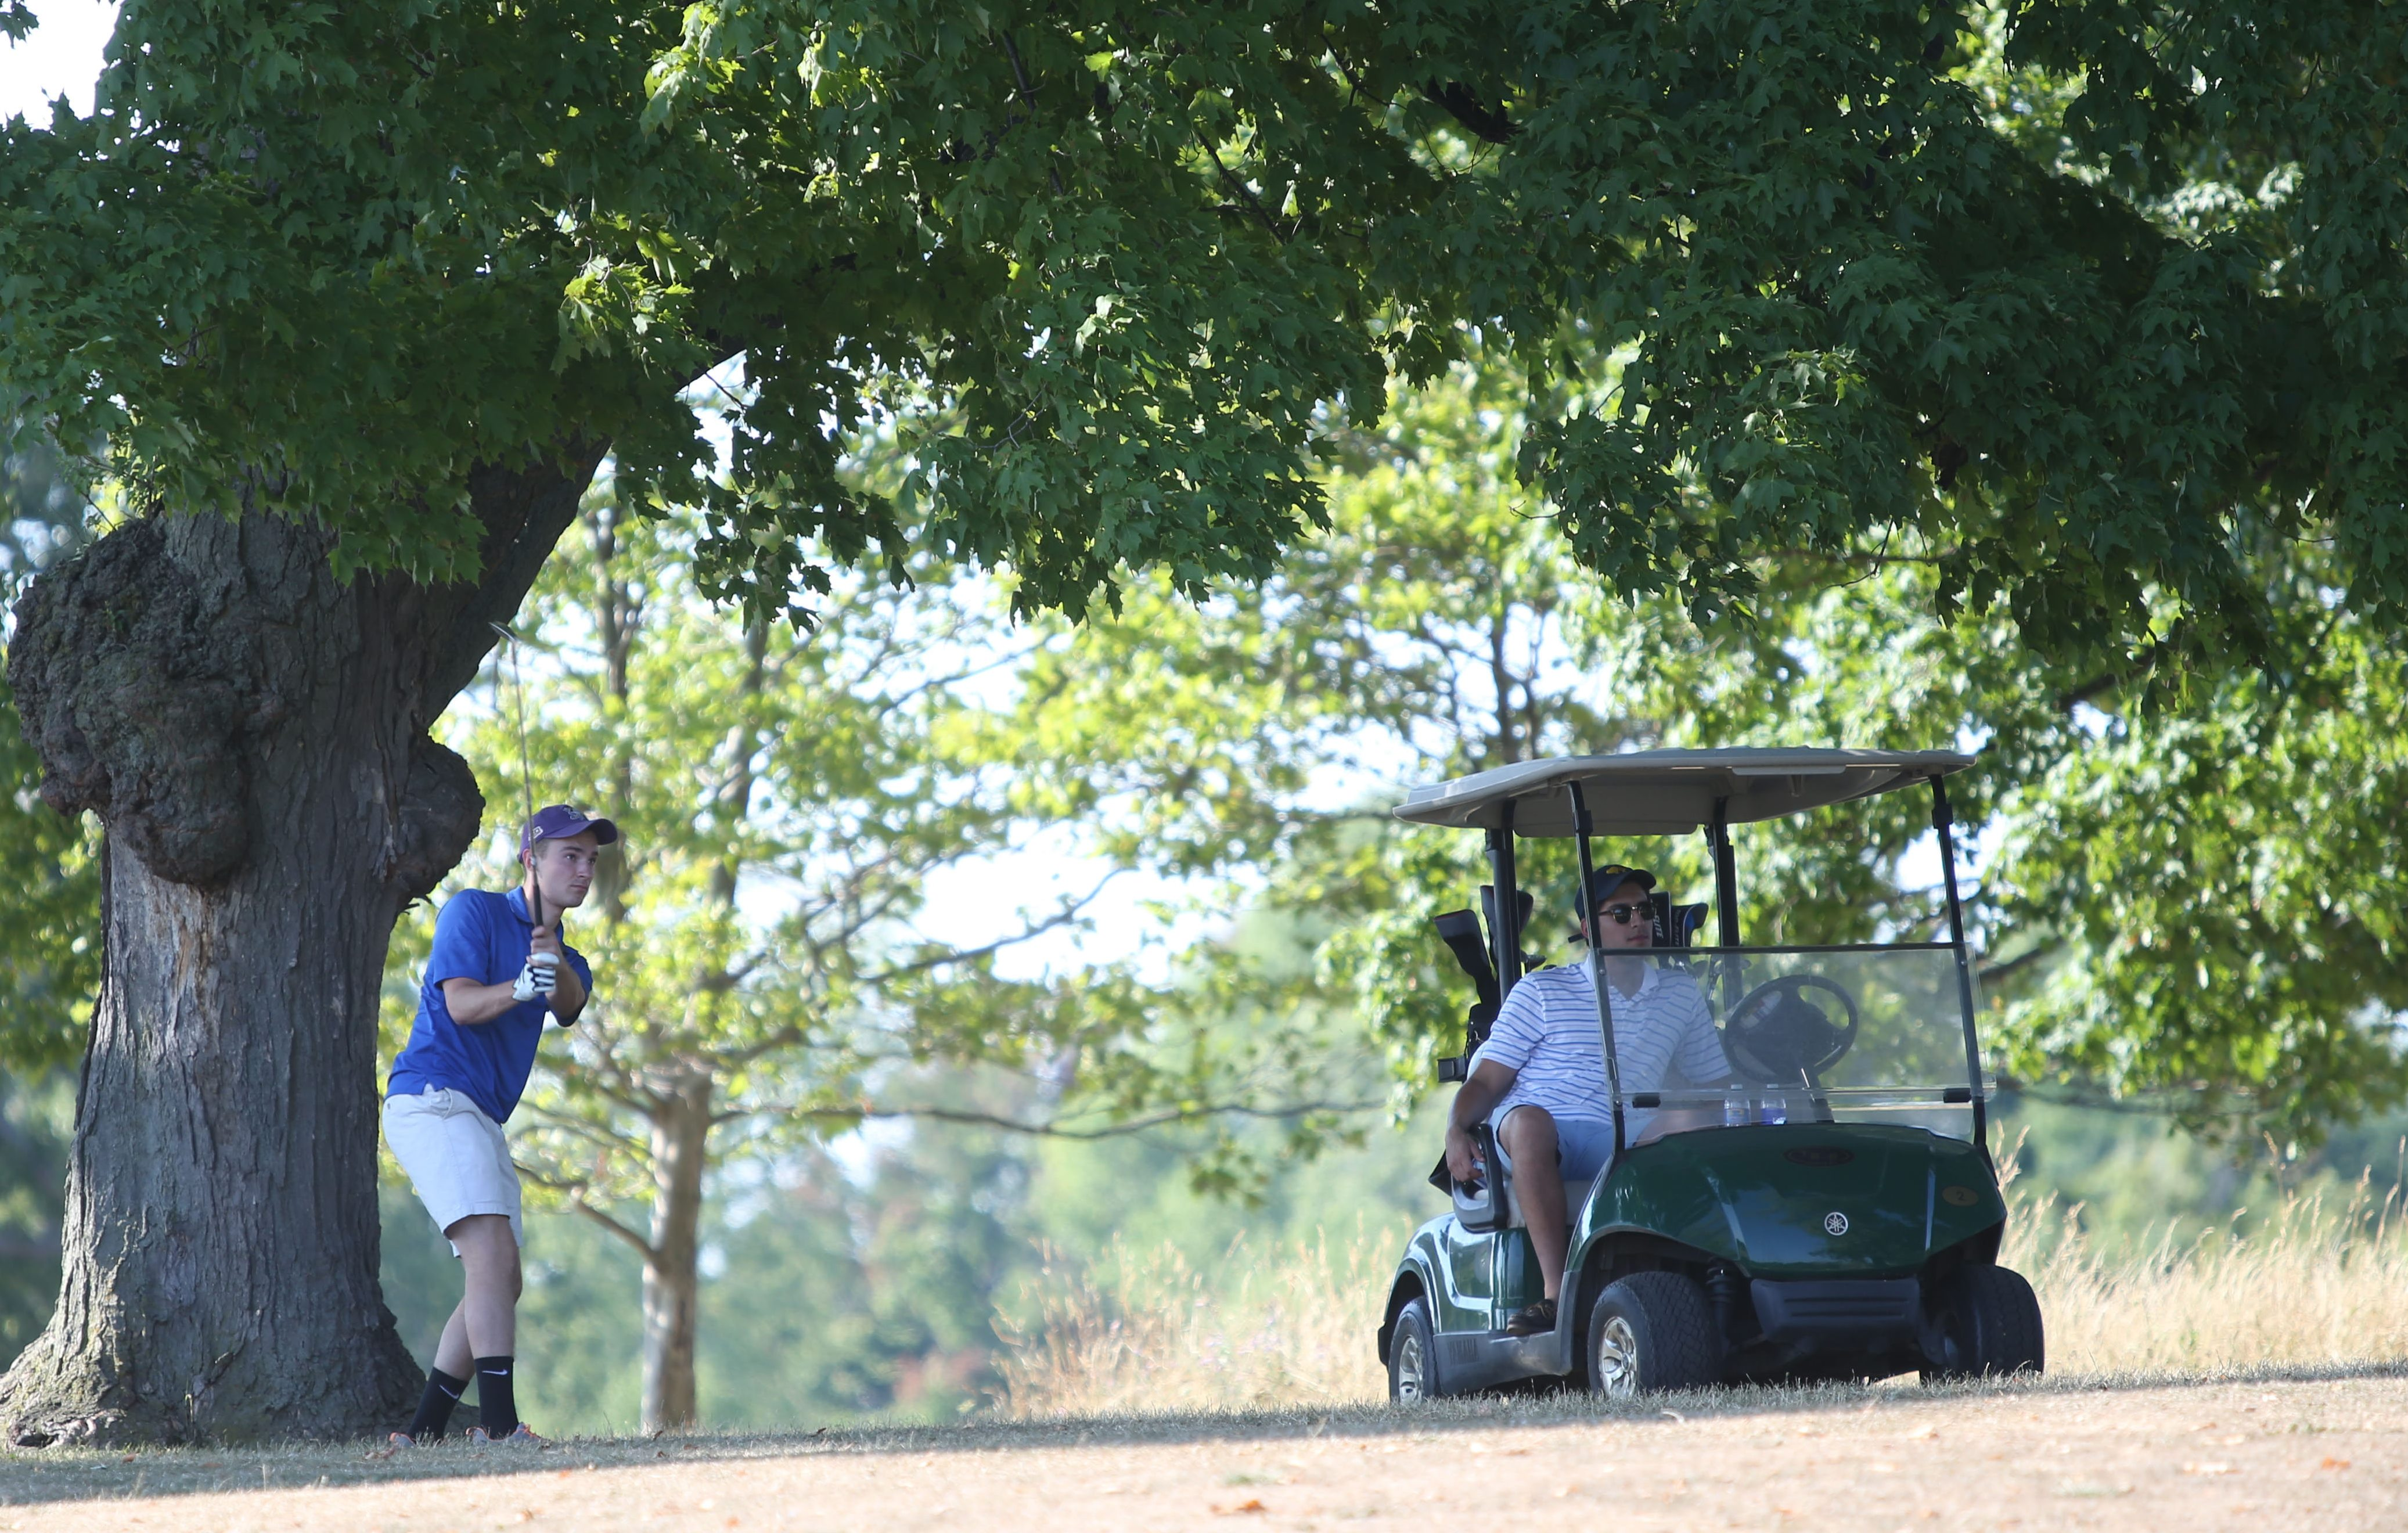 Occasional golfers Collin Rampado, left, and James Ghosen play a round of golf recently in Delaware Park.  (Sharon Cantillon/Buffalo News)